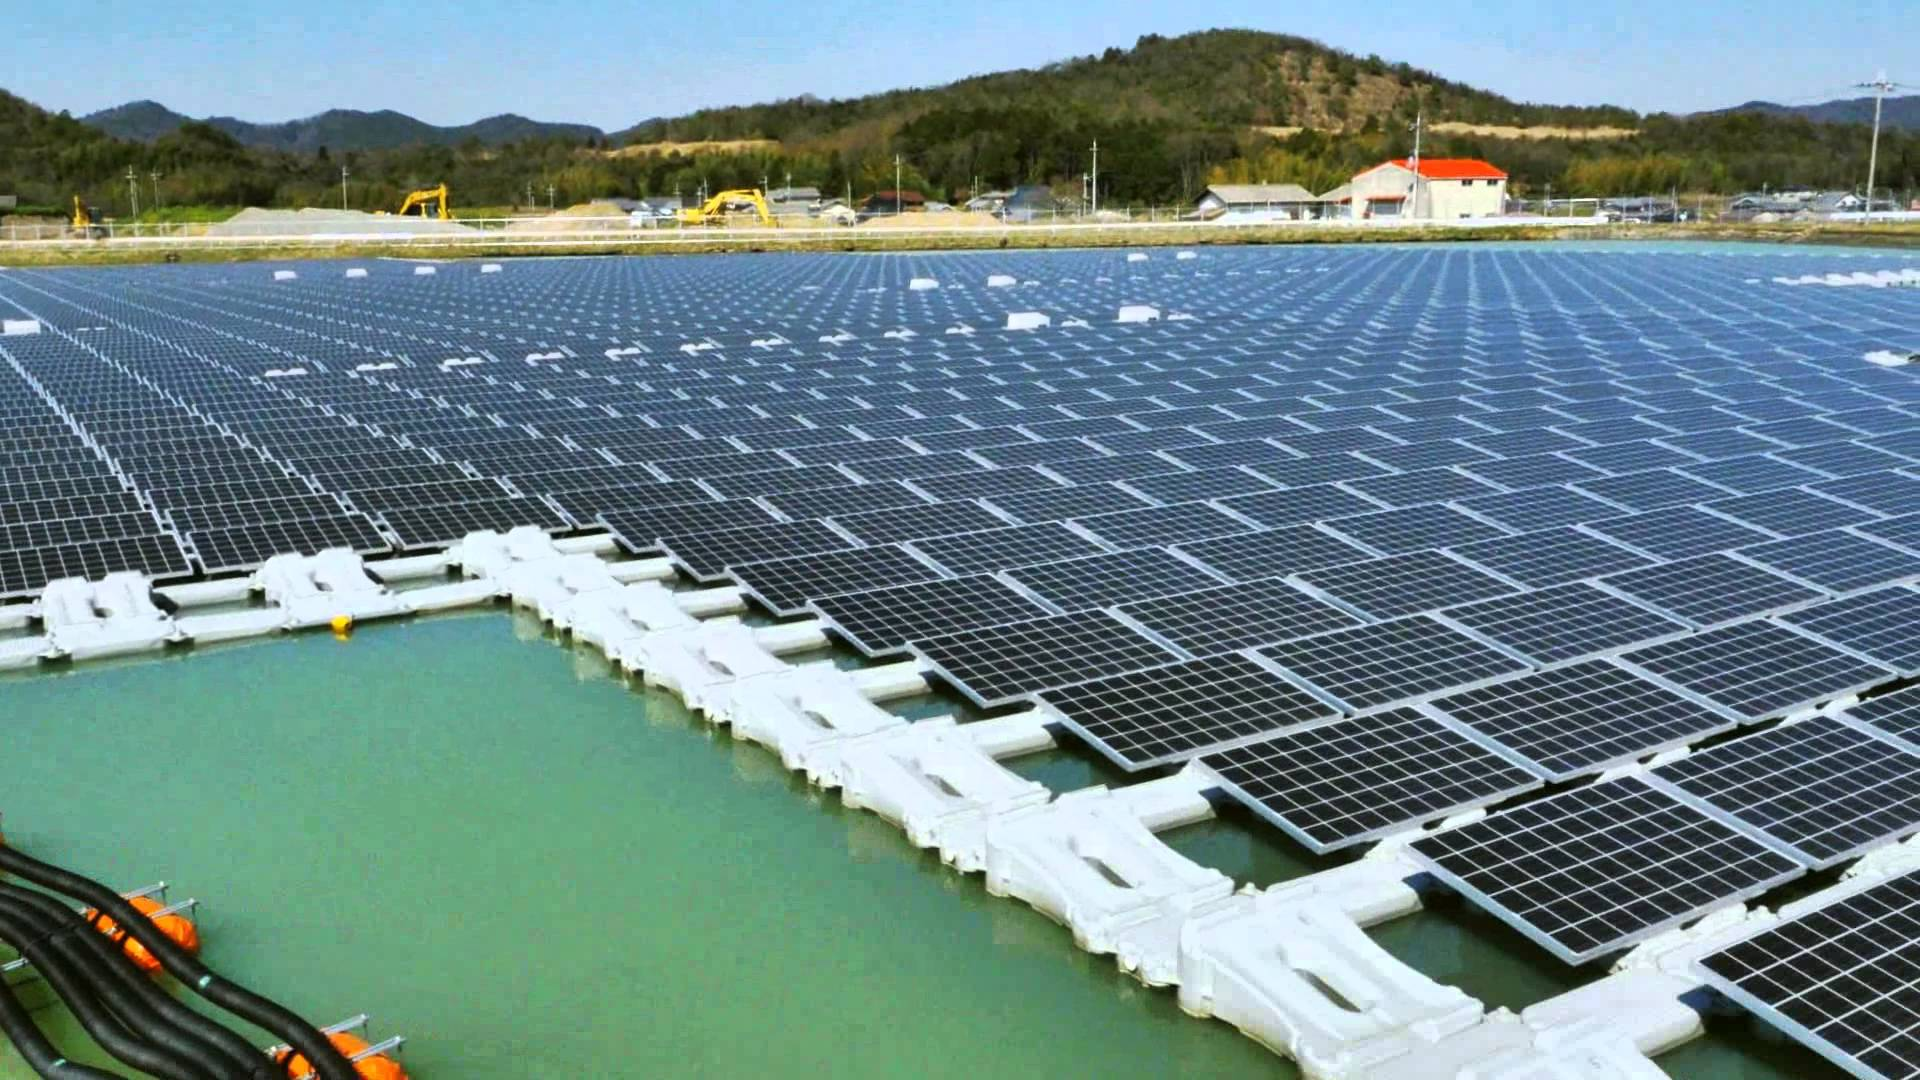 china space solar power plant - HD 1920×1080